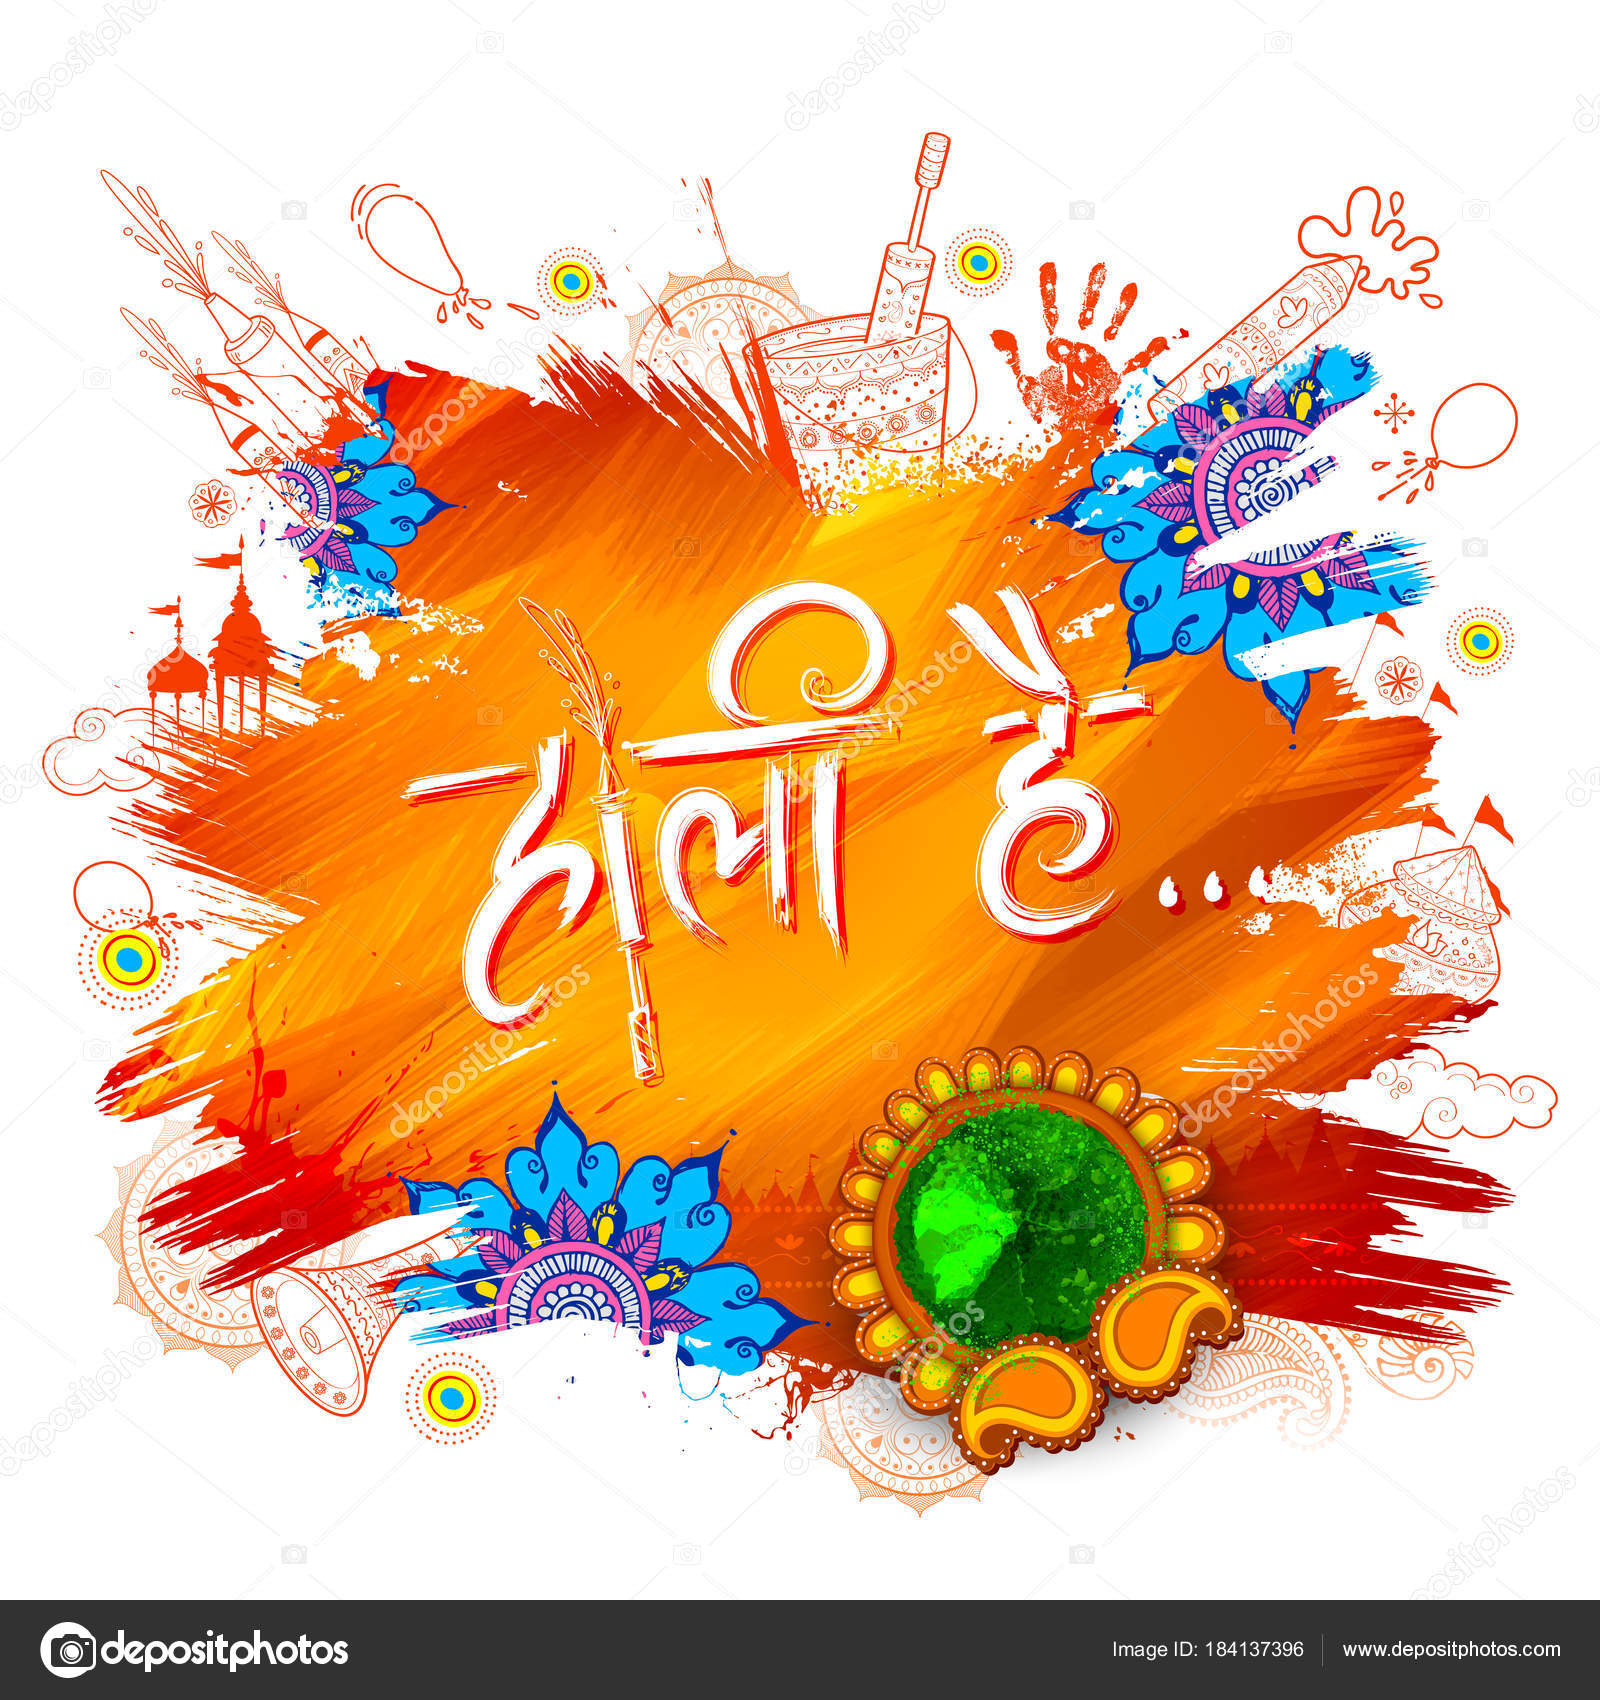 Happy holi background for festival of colors celebration greetings happy holi background for festival of colors celebration greetings stock vector kristyandbryce Image collections